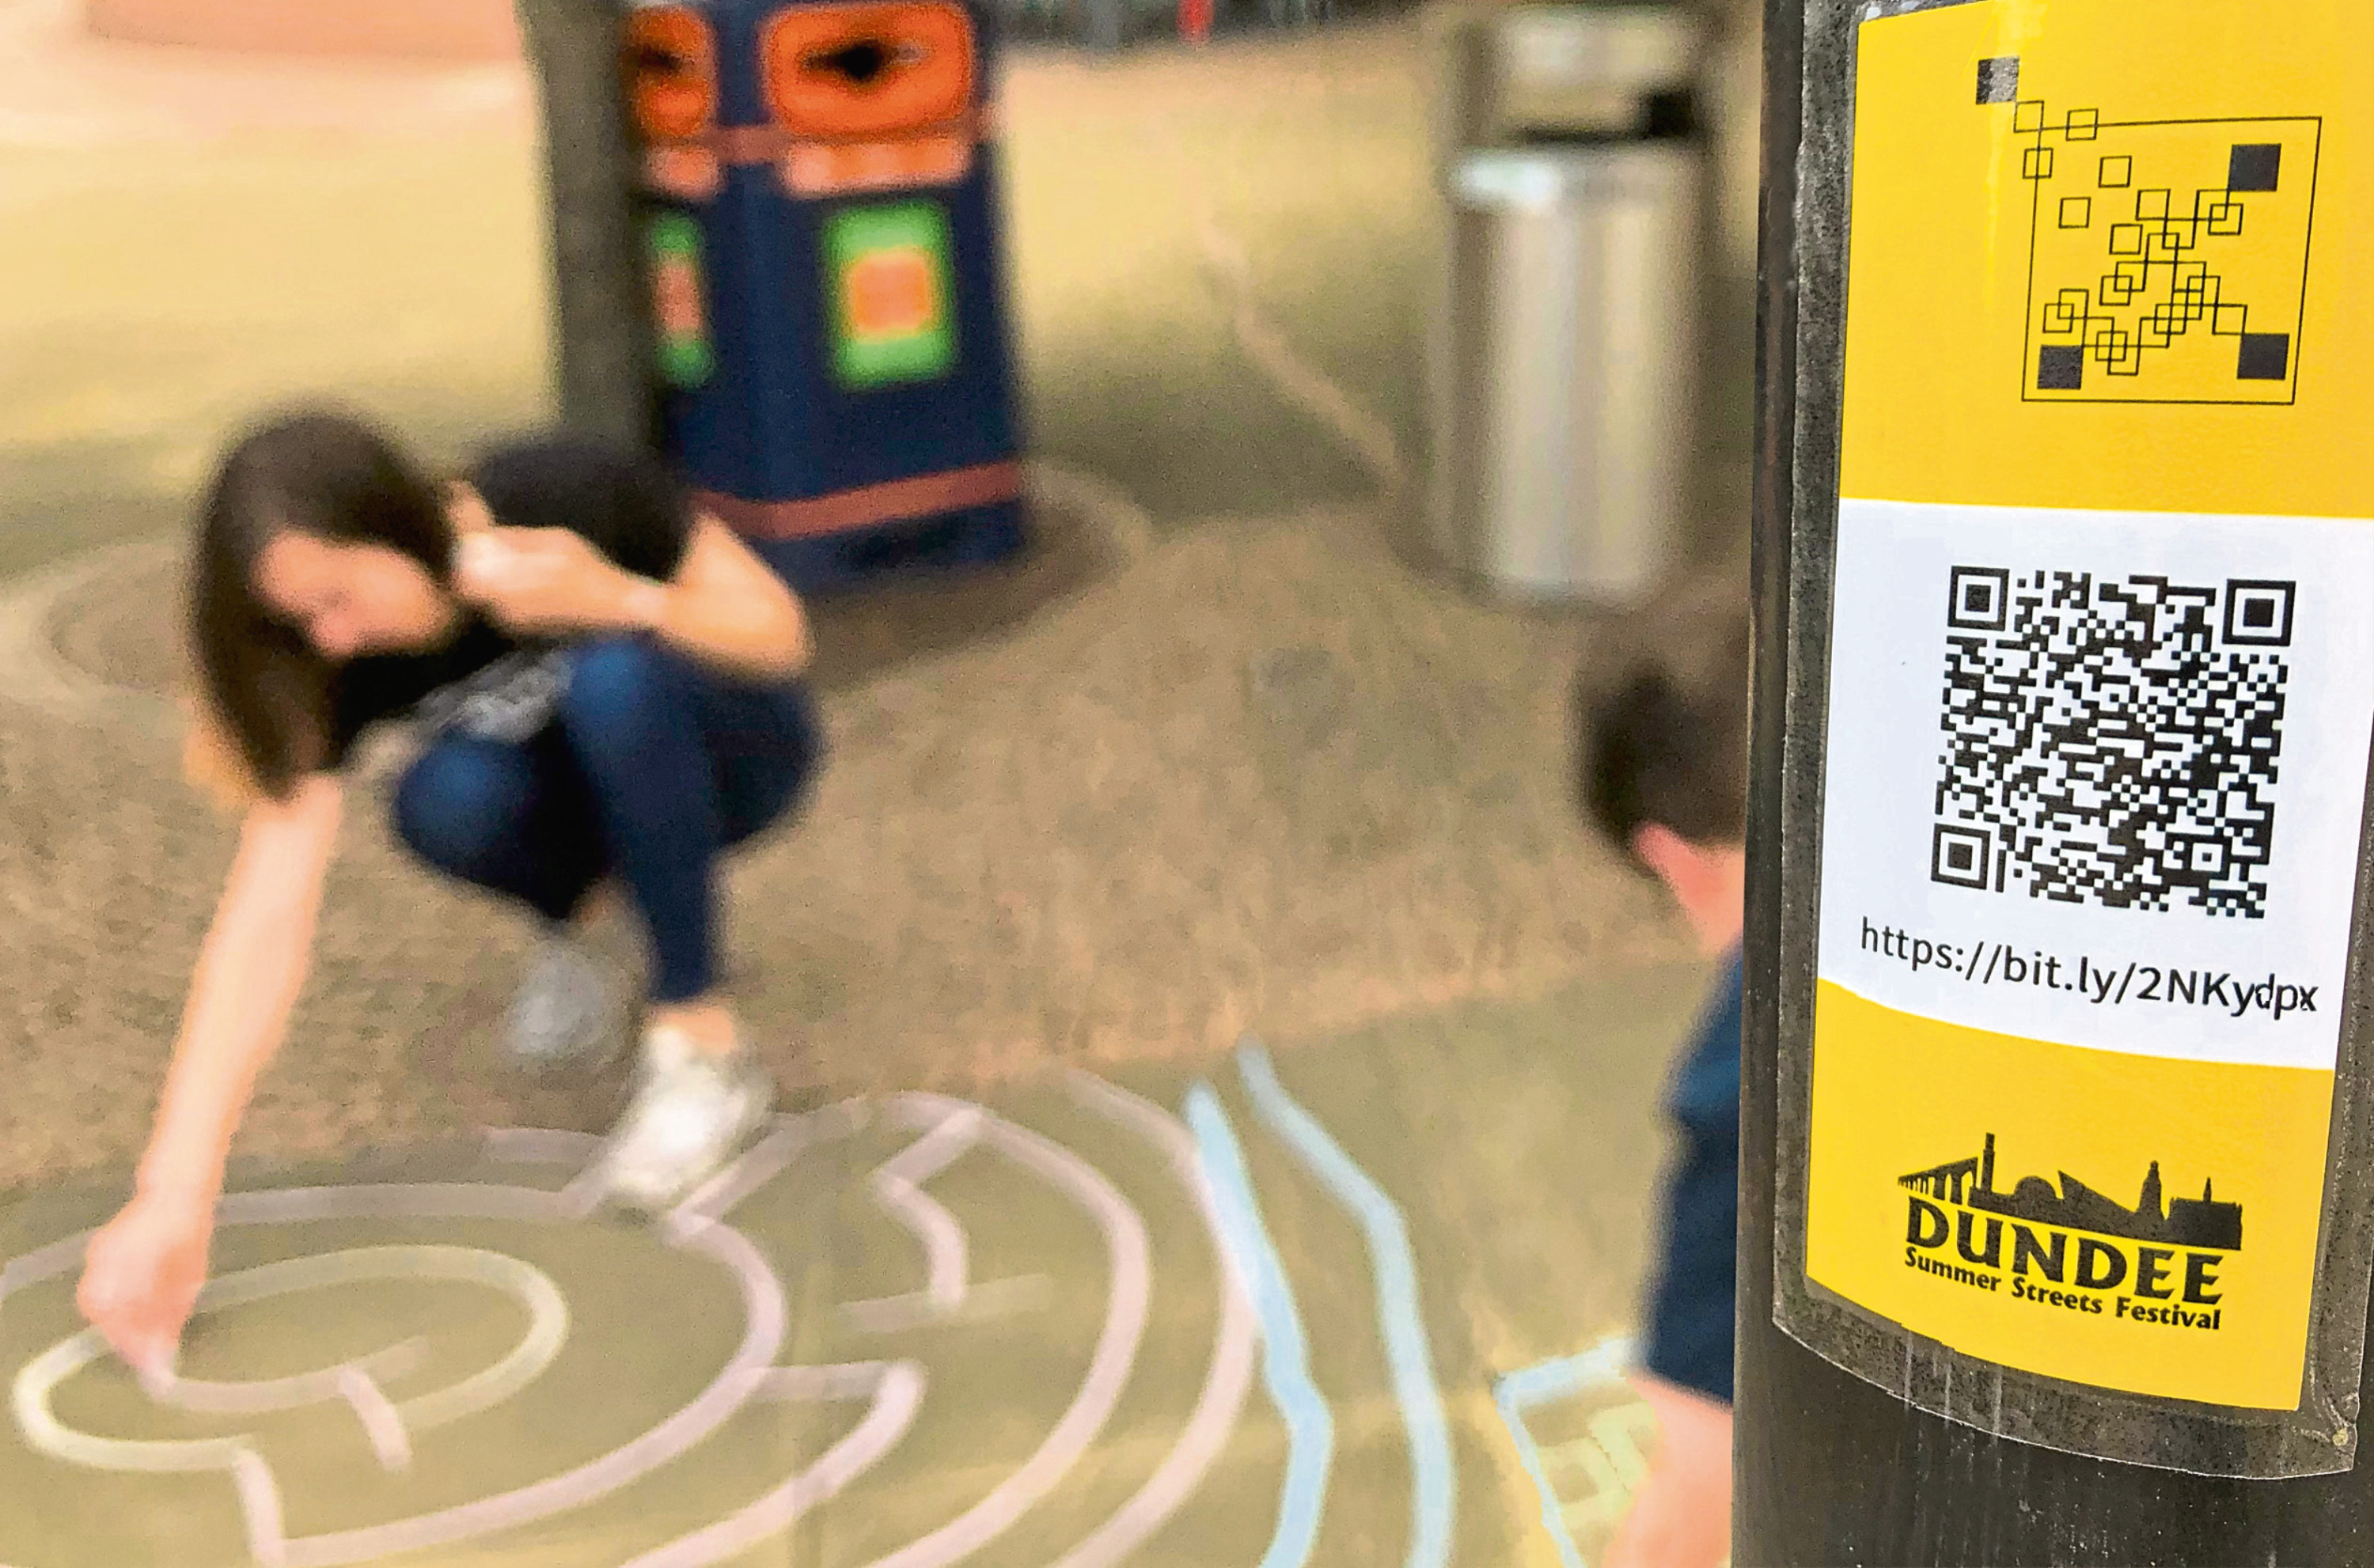 The collectors will see participants use smartphones to collect a series of audio clips from QR code stickers scattered around the city.